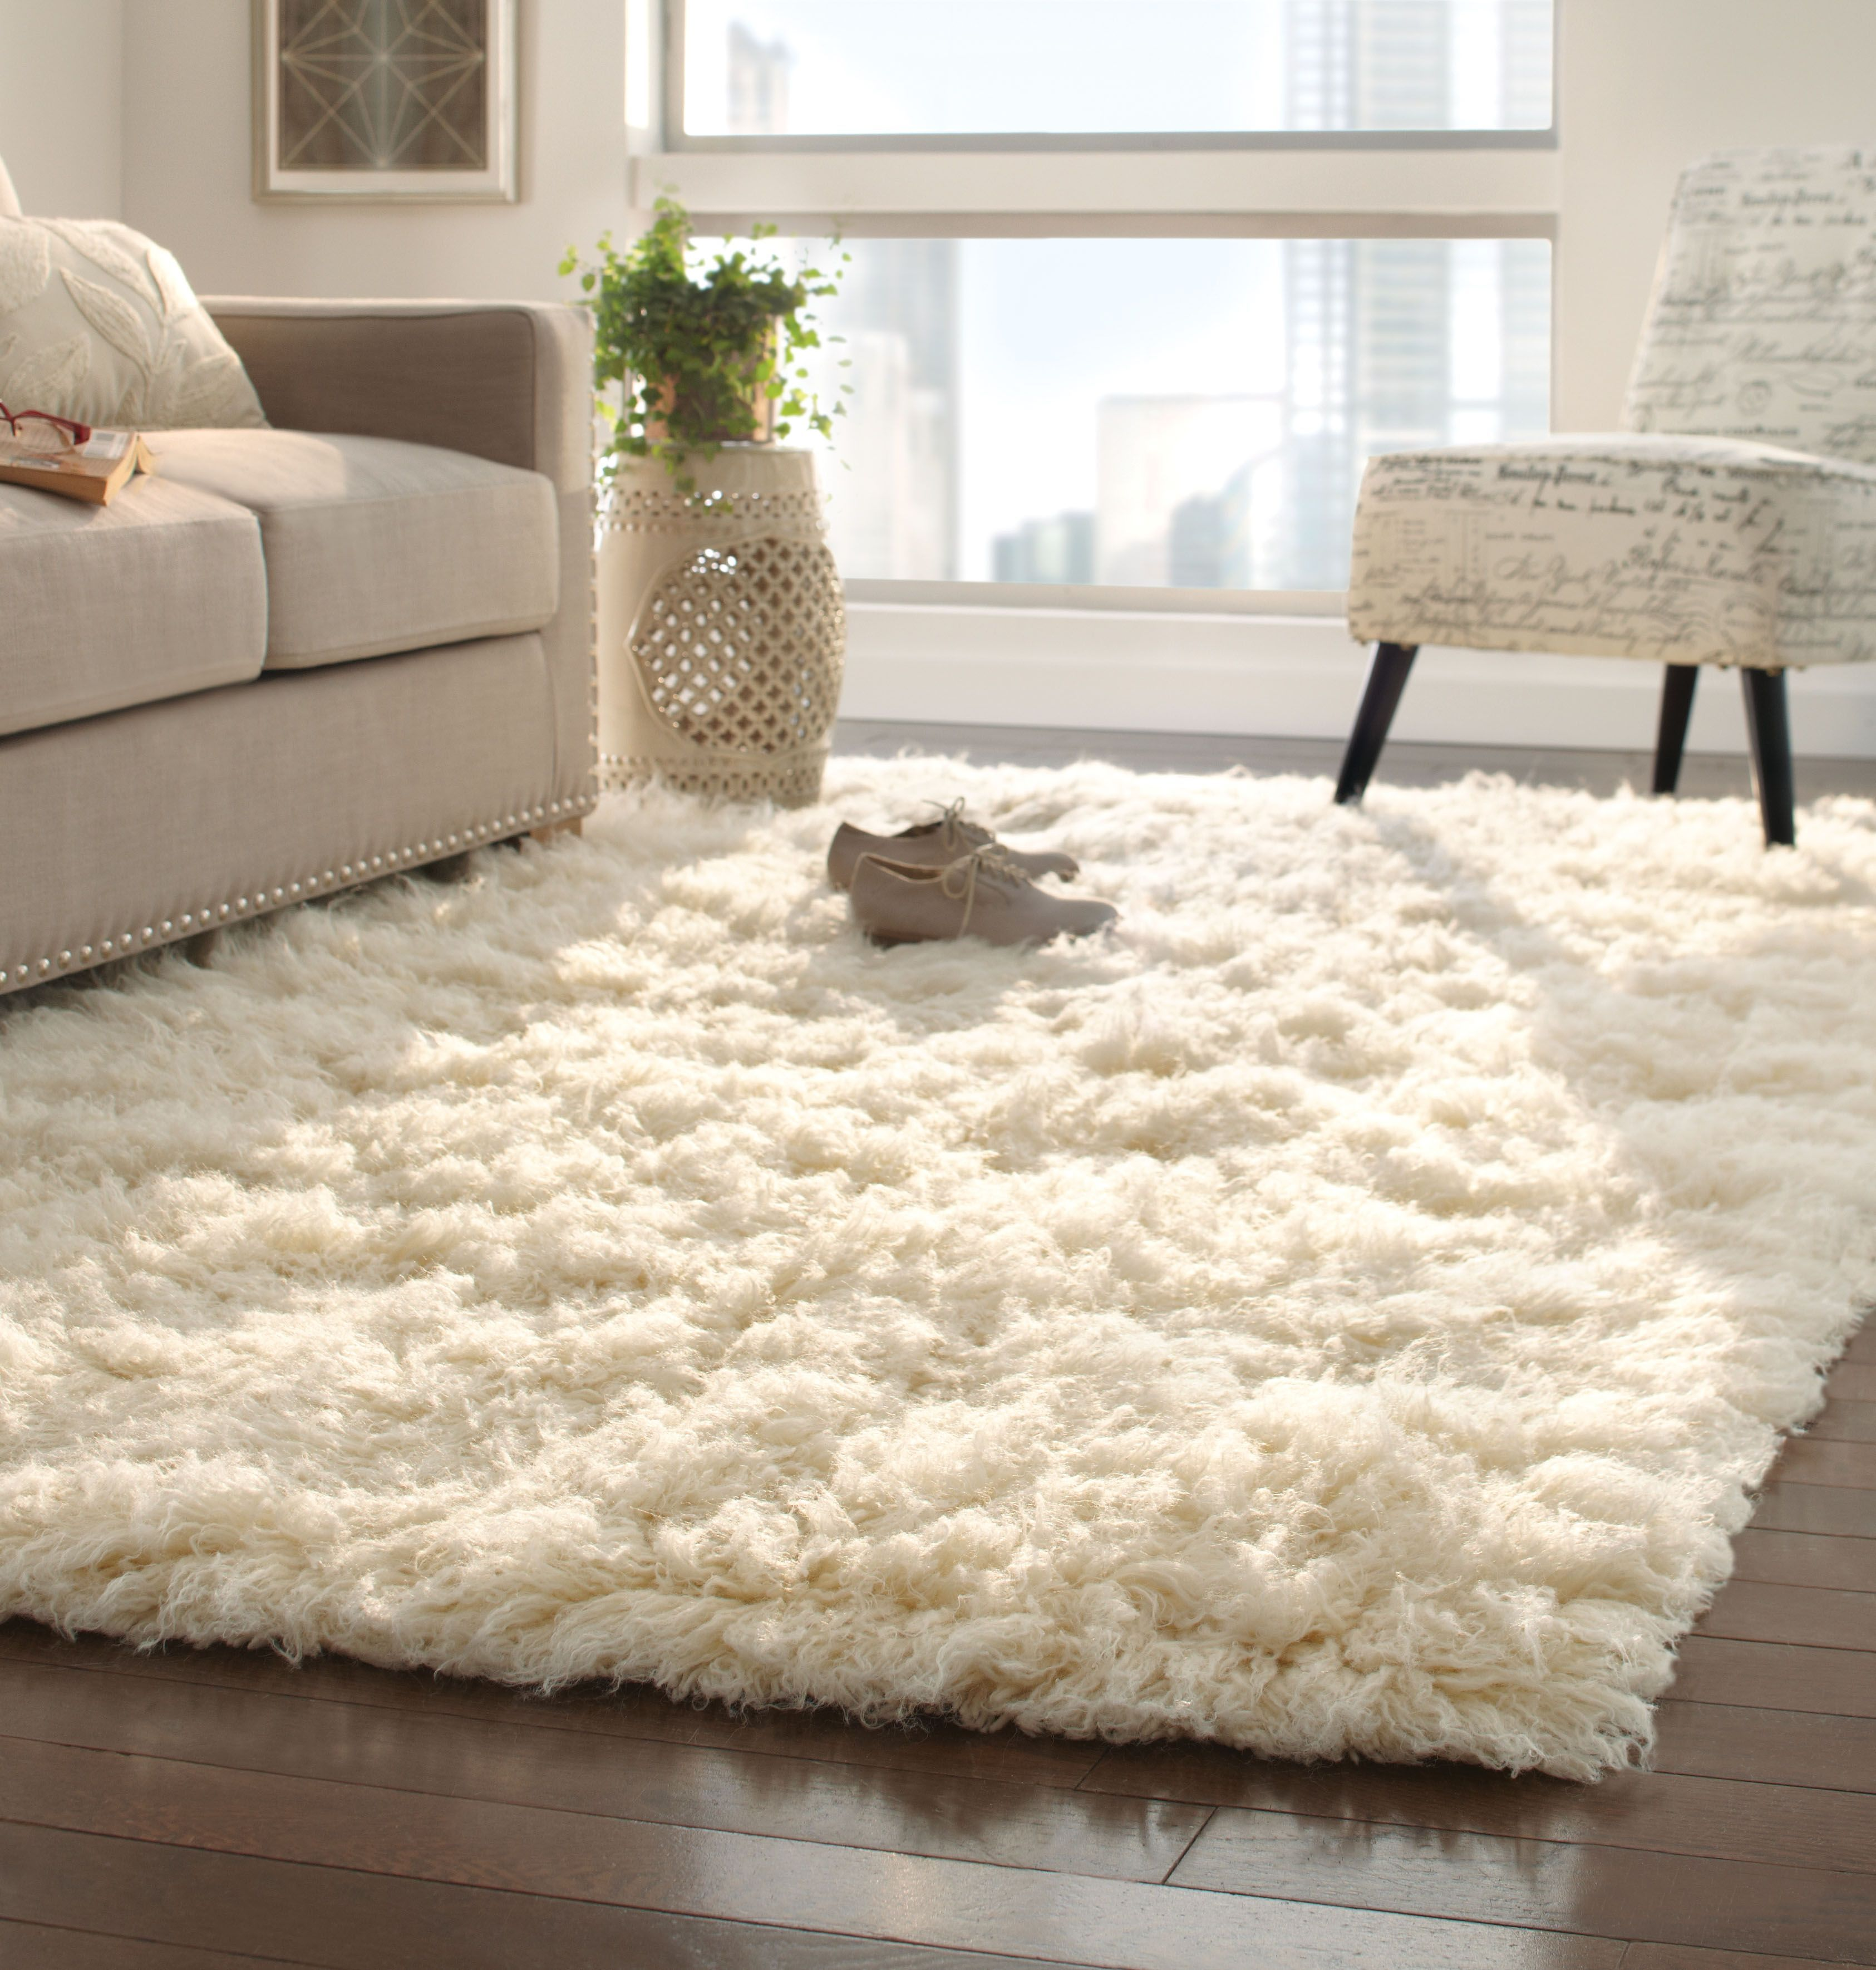 Major Fluffy Softness Going On Here Cant Get Enough Of A 100 New Zealand Wool Rug Its Softness Comes From Being Washed In The Waterfalls Of The Pindus Mounta Mit Bildern